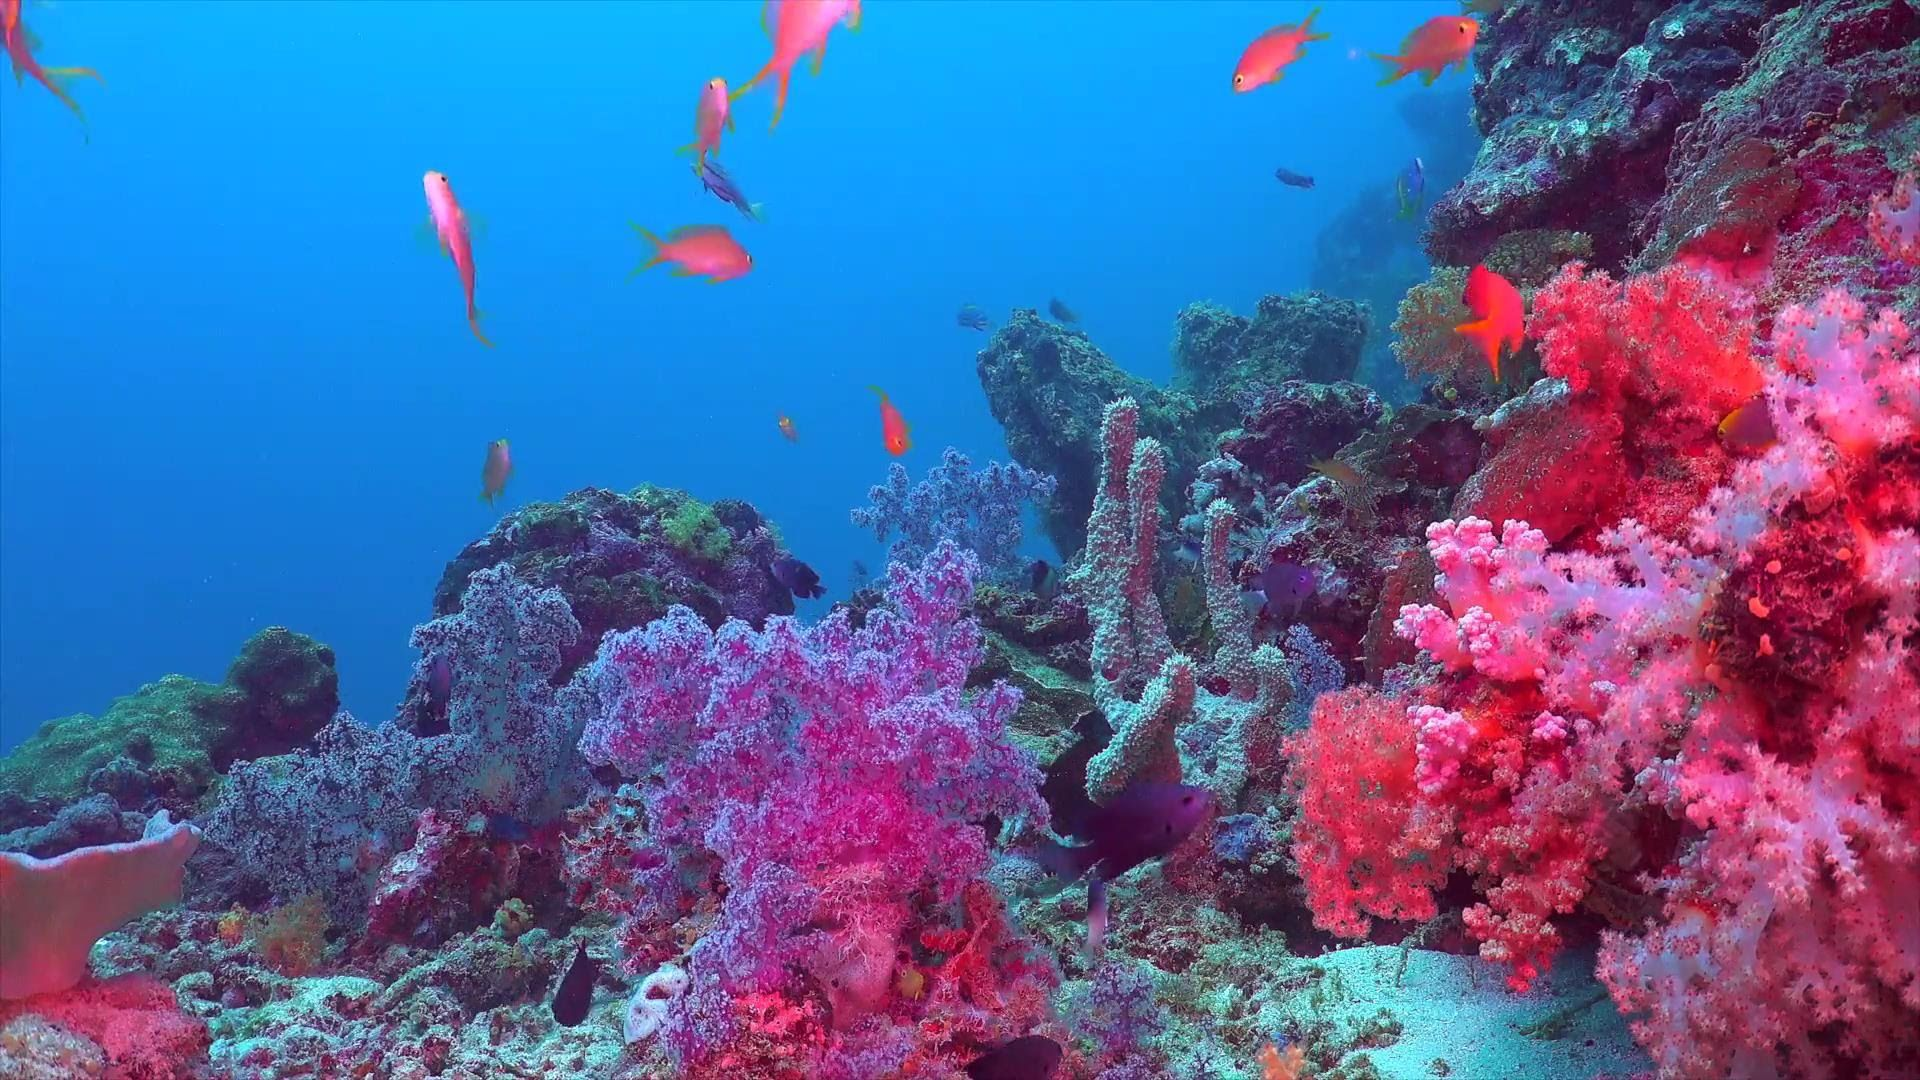 amberfern × coral reef (relaxing scenes of the underwater scenery